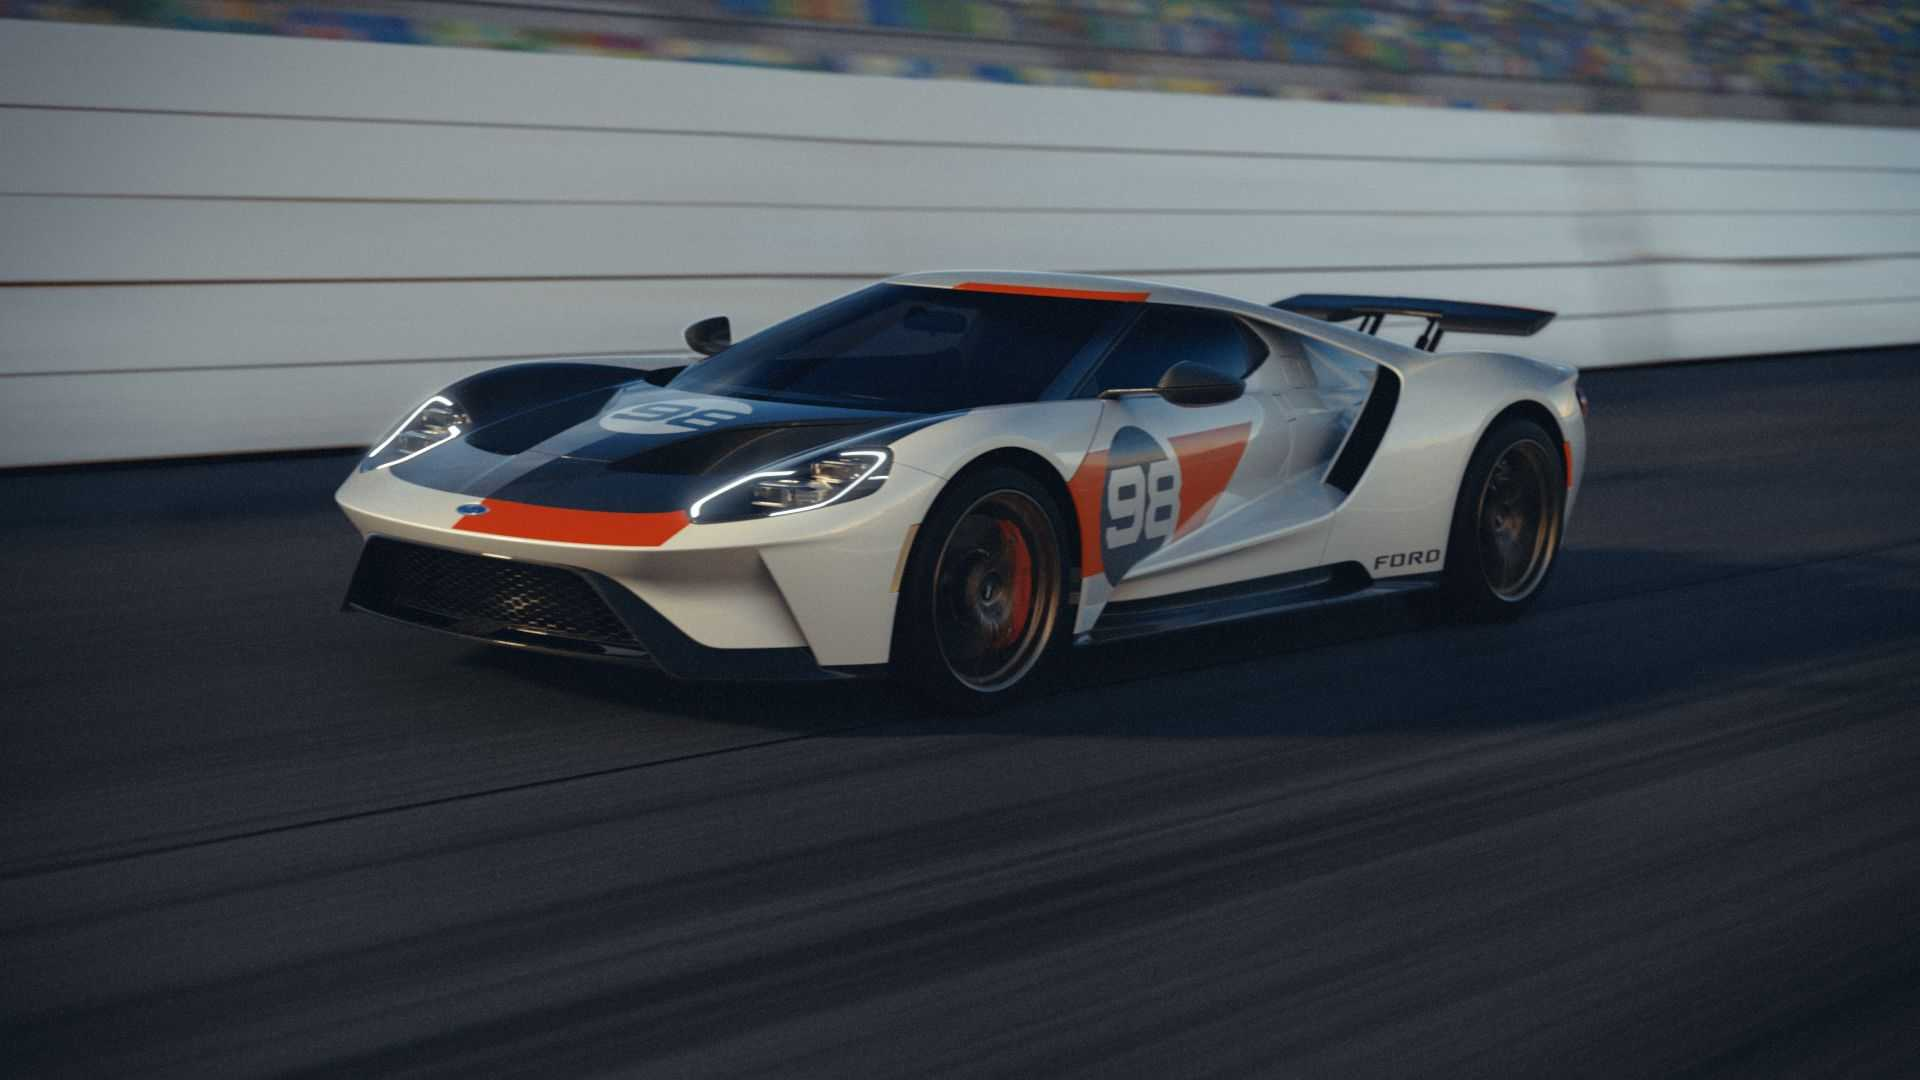 2021-ford-gt-heritage-edition-front-running-shot.jpg